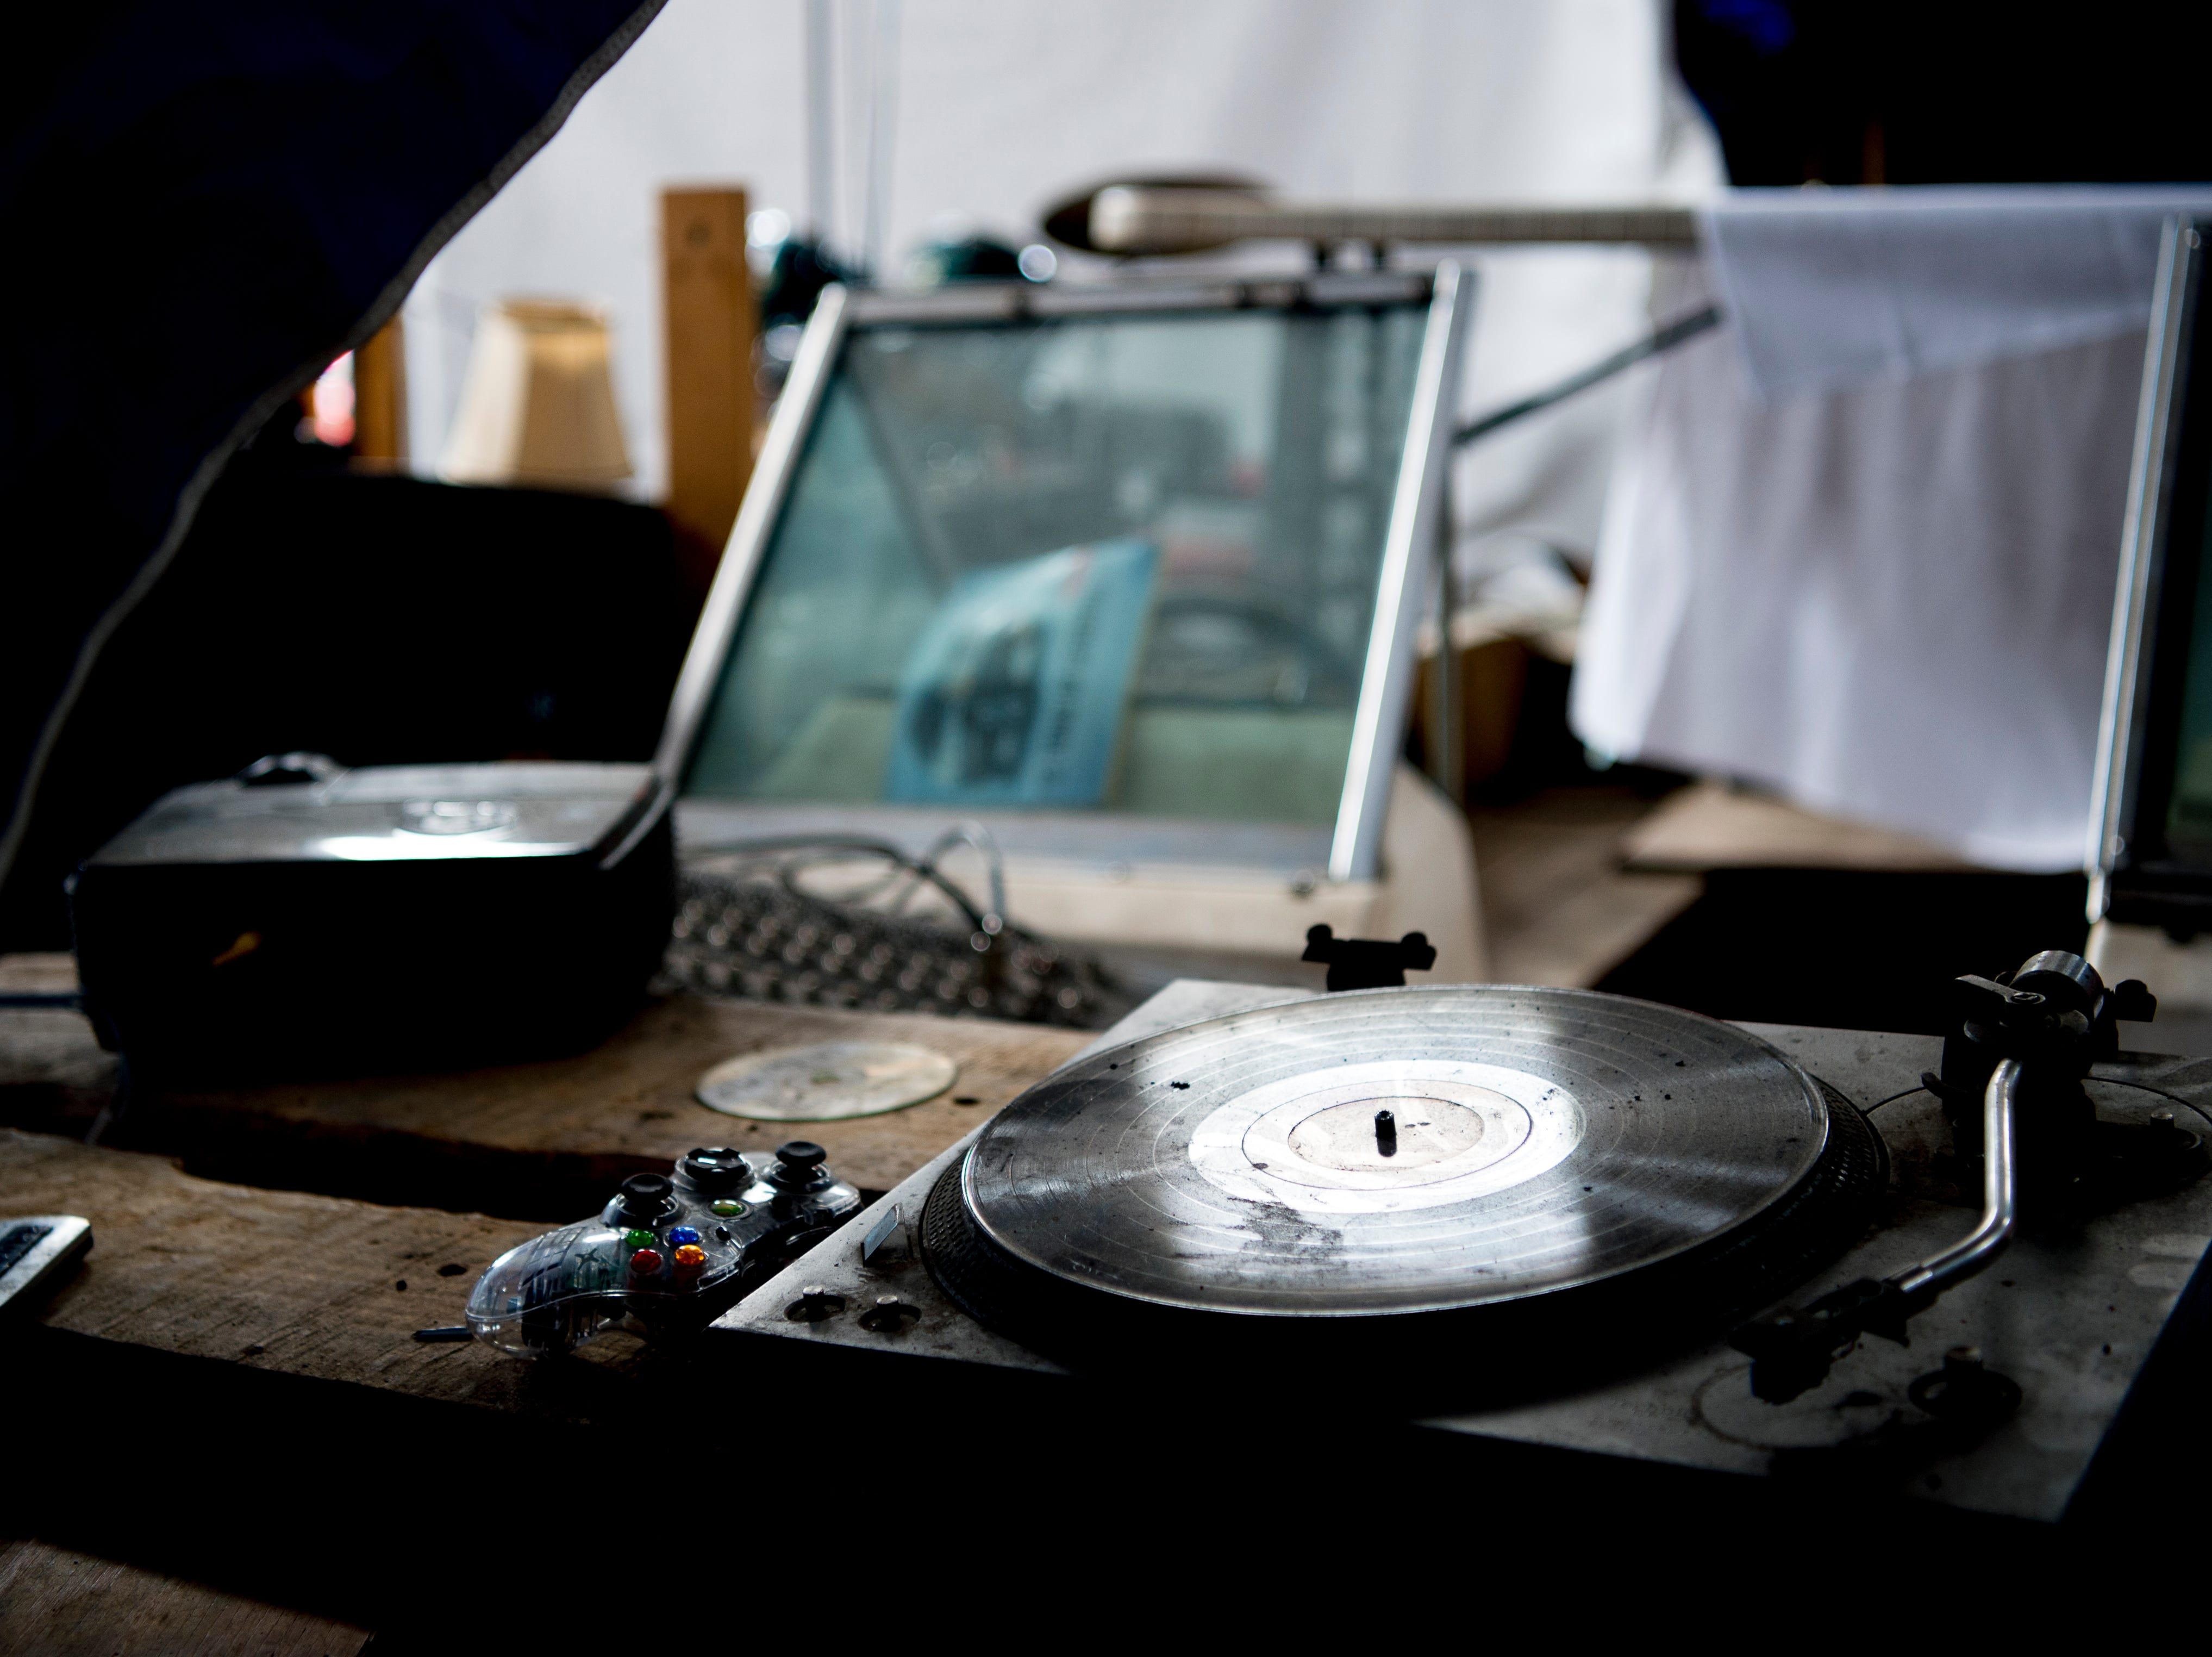 An old turntable sits on a boat in the center of the venue at Bar Marley in Knoxville, Tennessee on Thursday, February 14, 2019. The Caribbean-themed Bar Marley is facing possible acquisition and condemnation by KCDC due to code violations.